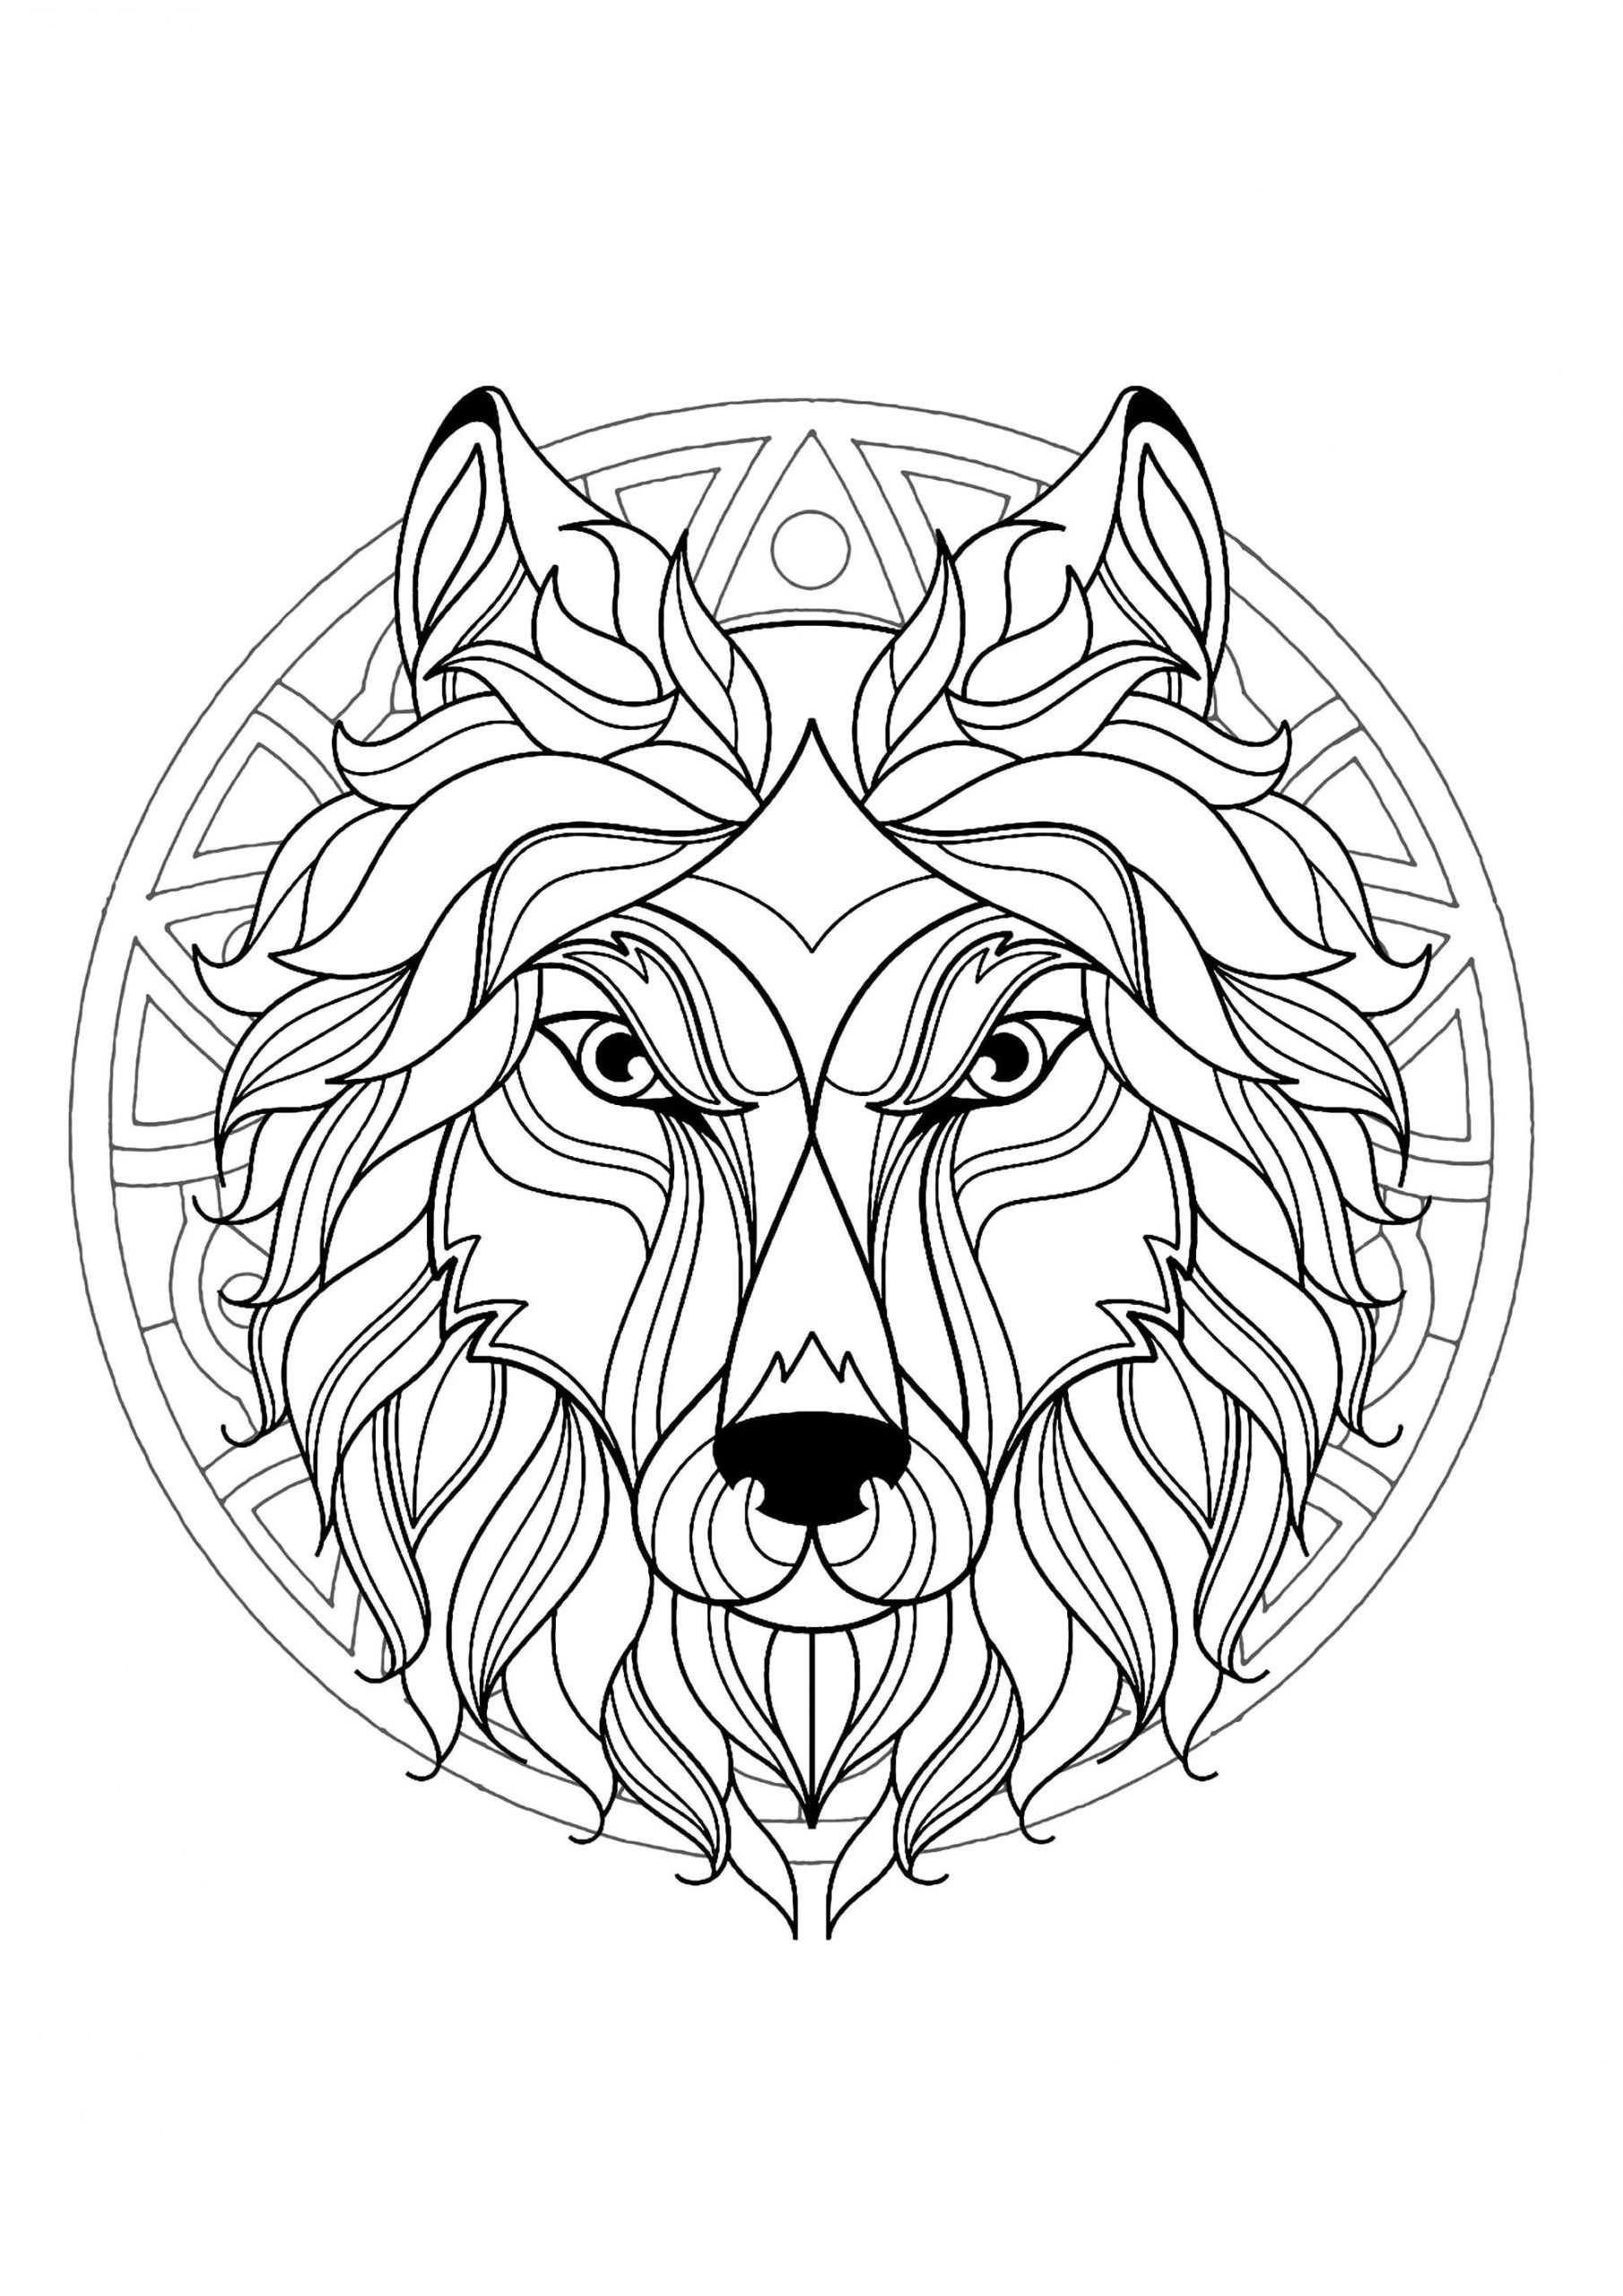 New Mandala Coloring Thevillageanthology Com In 2021 Mandala Coloring Books Lion Coloring Pages Animal Coloring Pages [ 2560 x 1810 Pixel ]